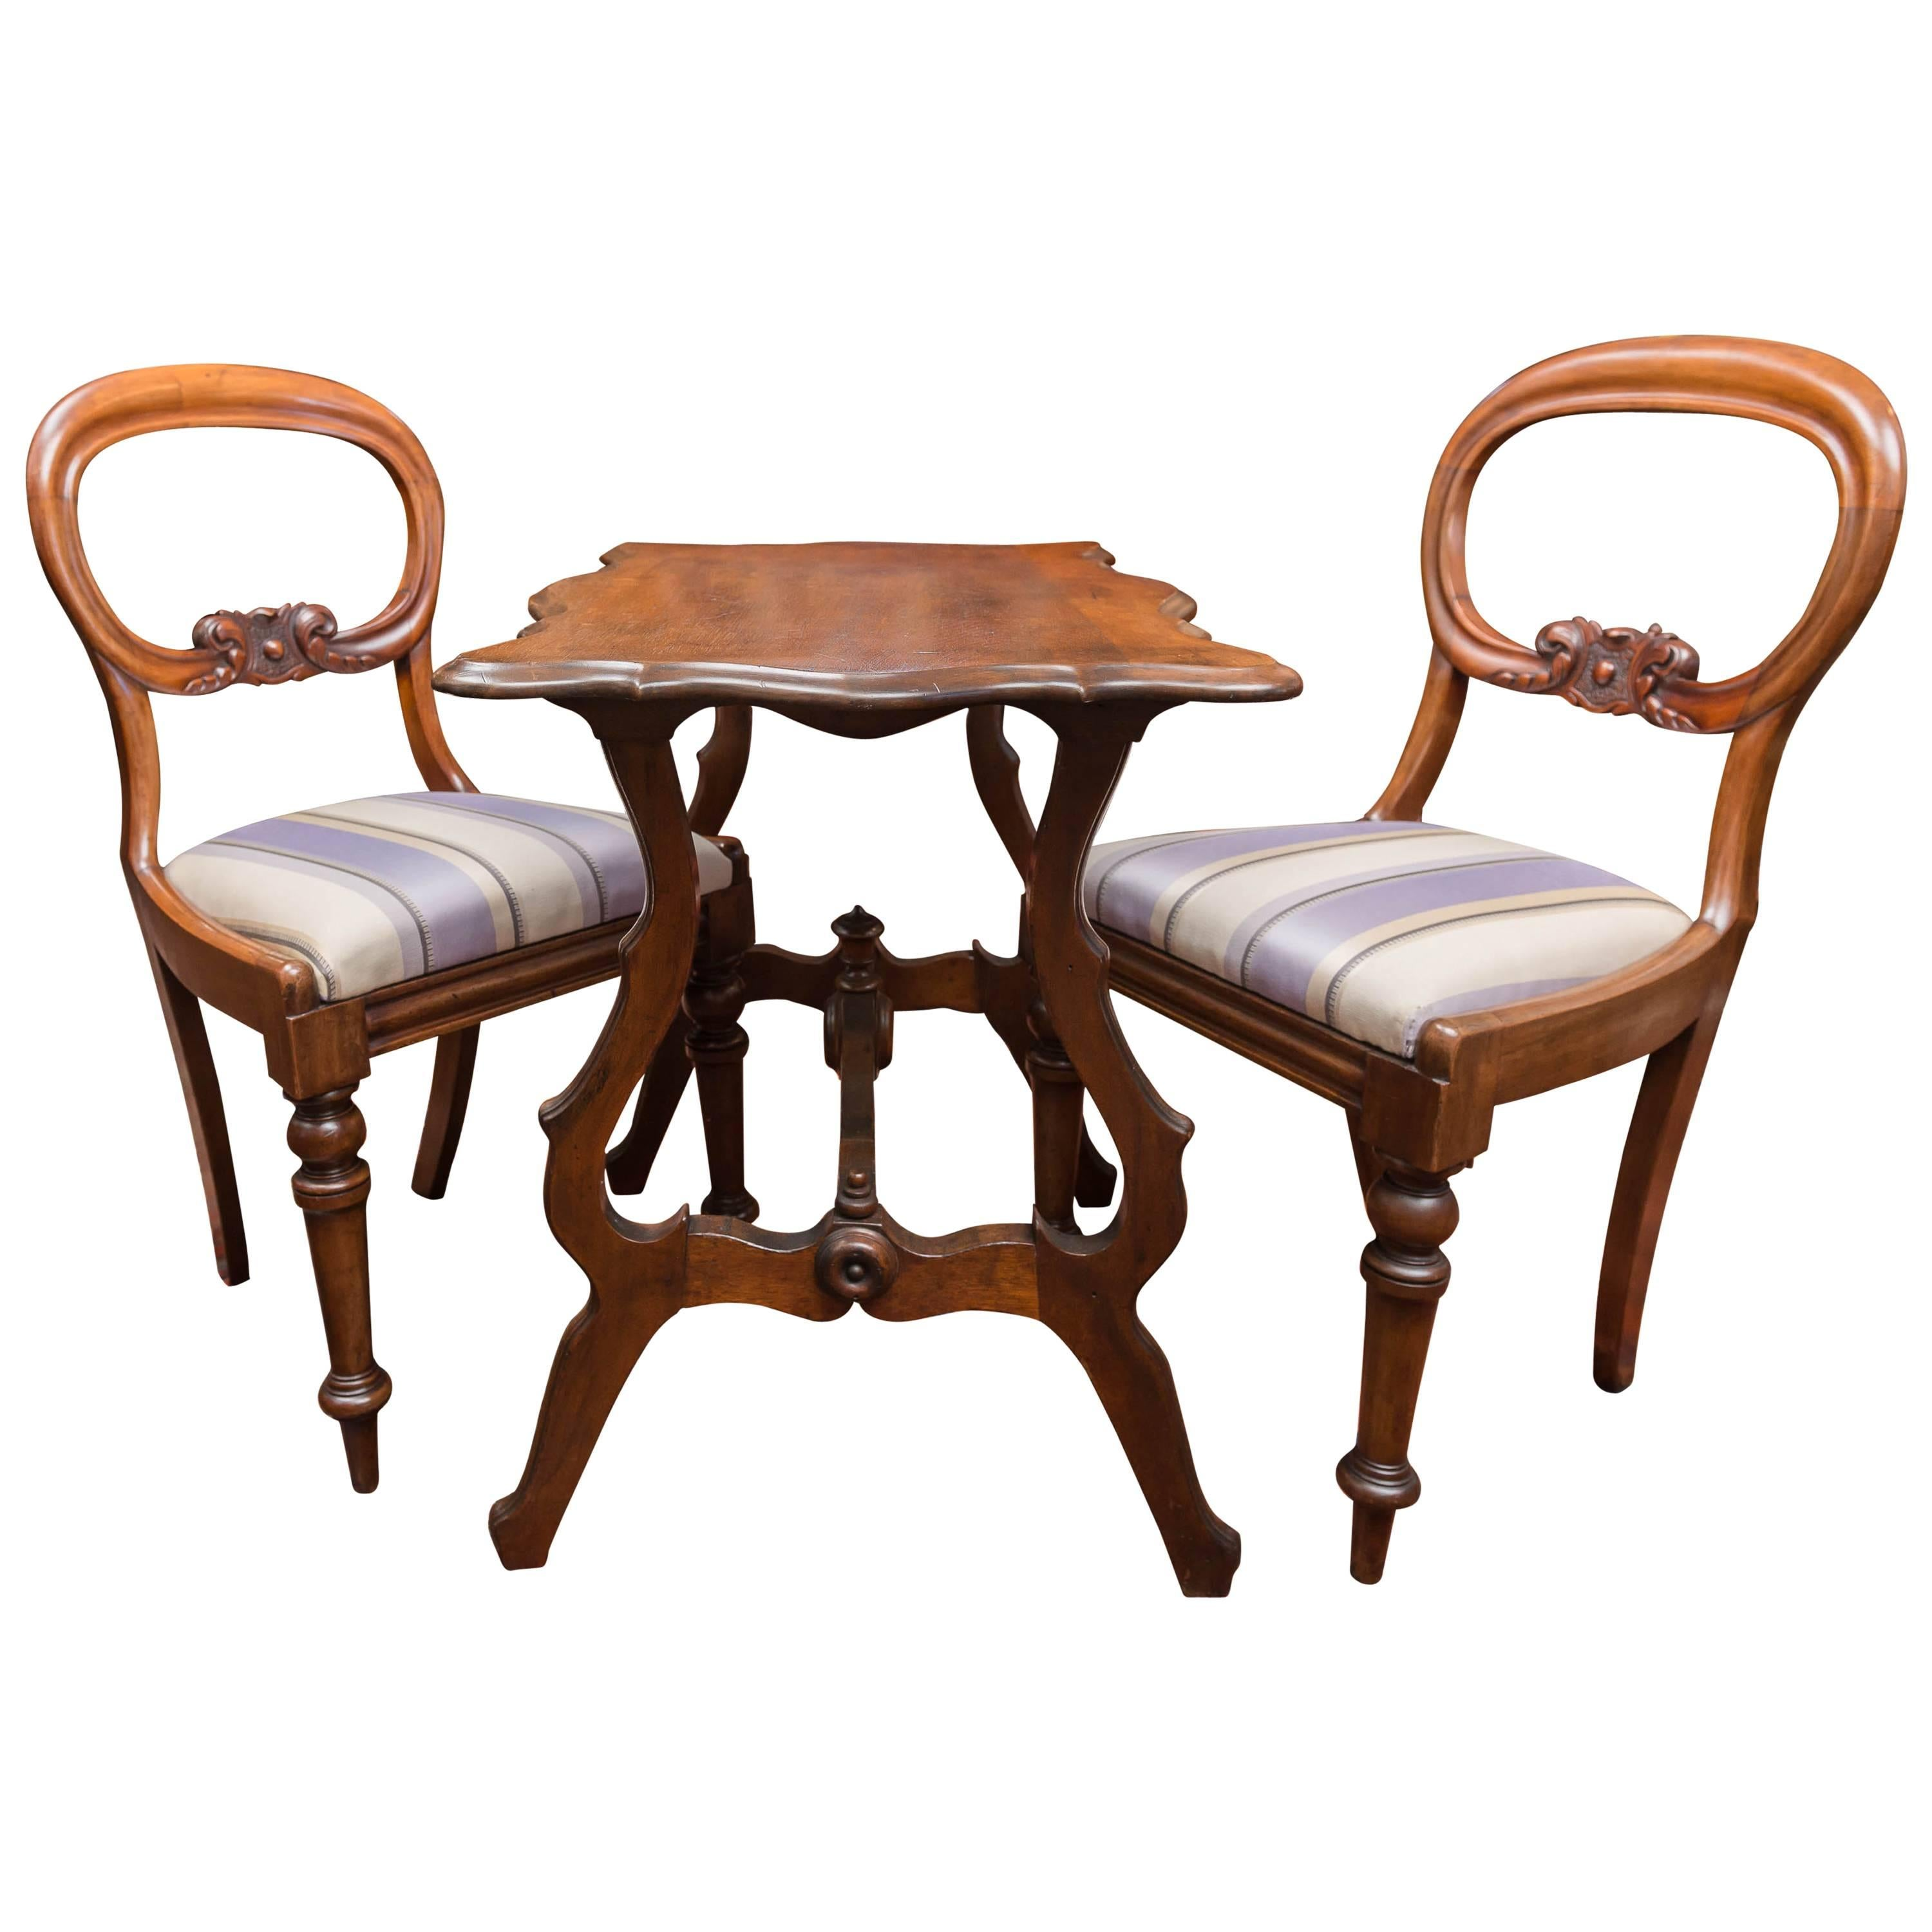 Superbe Chess Table Set, Pair Of 19th Century Mahogany Chairs And Walnut Table For  Sale